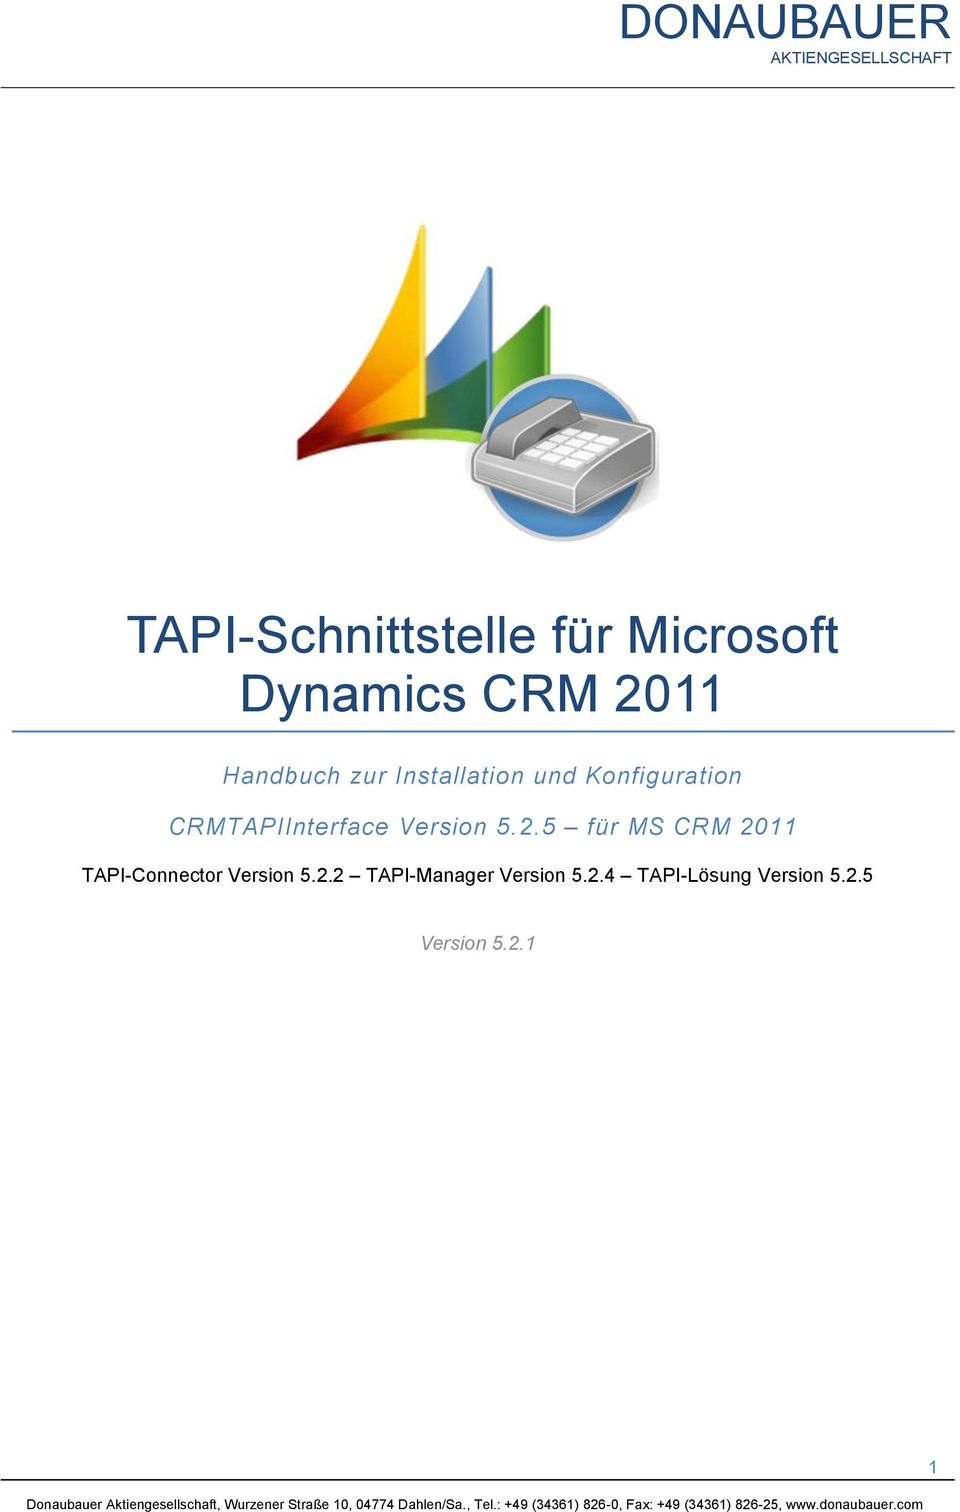 5.2.5 für MS CRM 2011 TAPI-Connector Version 5.2.2 TAPI-Manager Version 5.